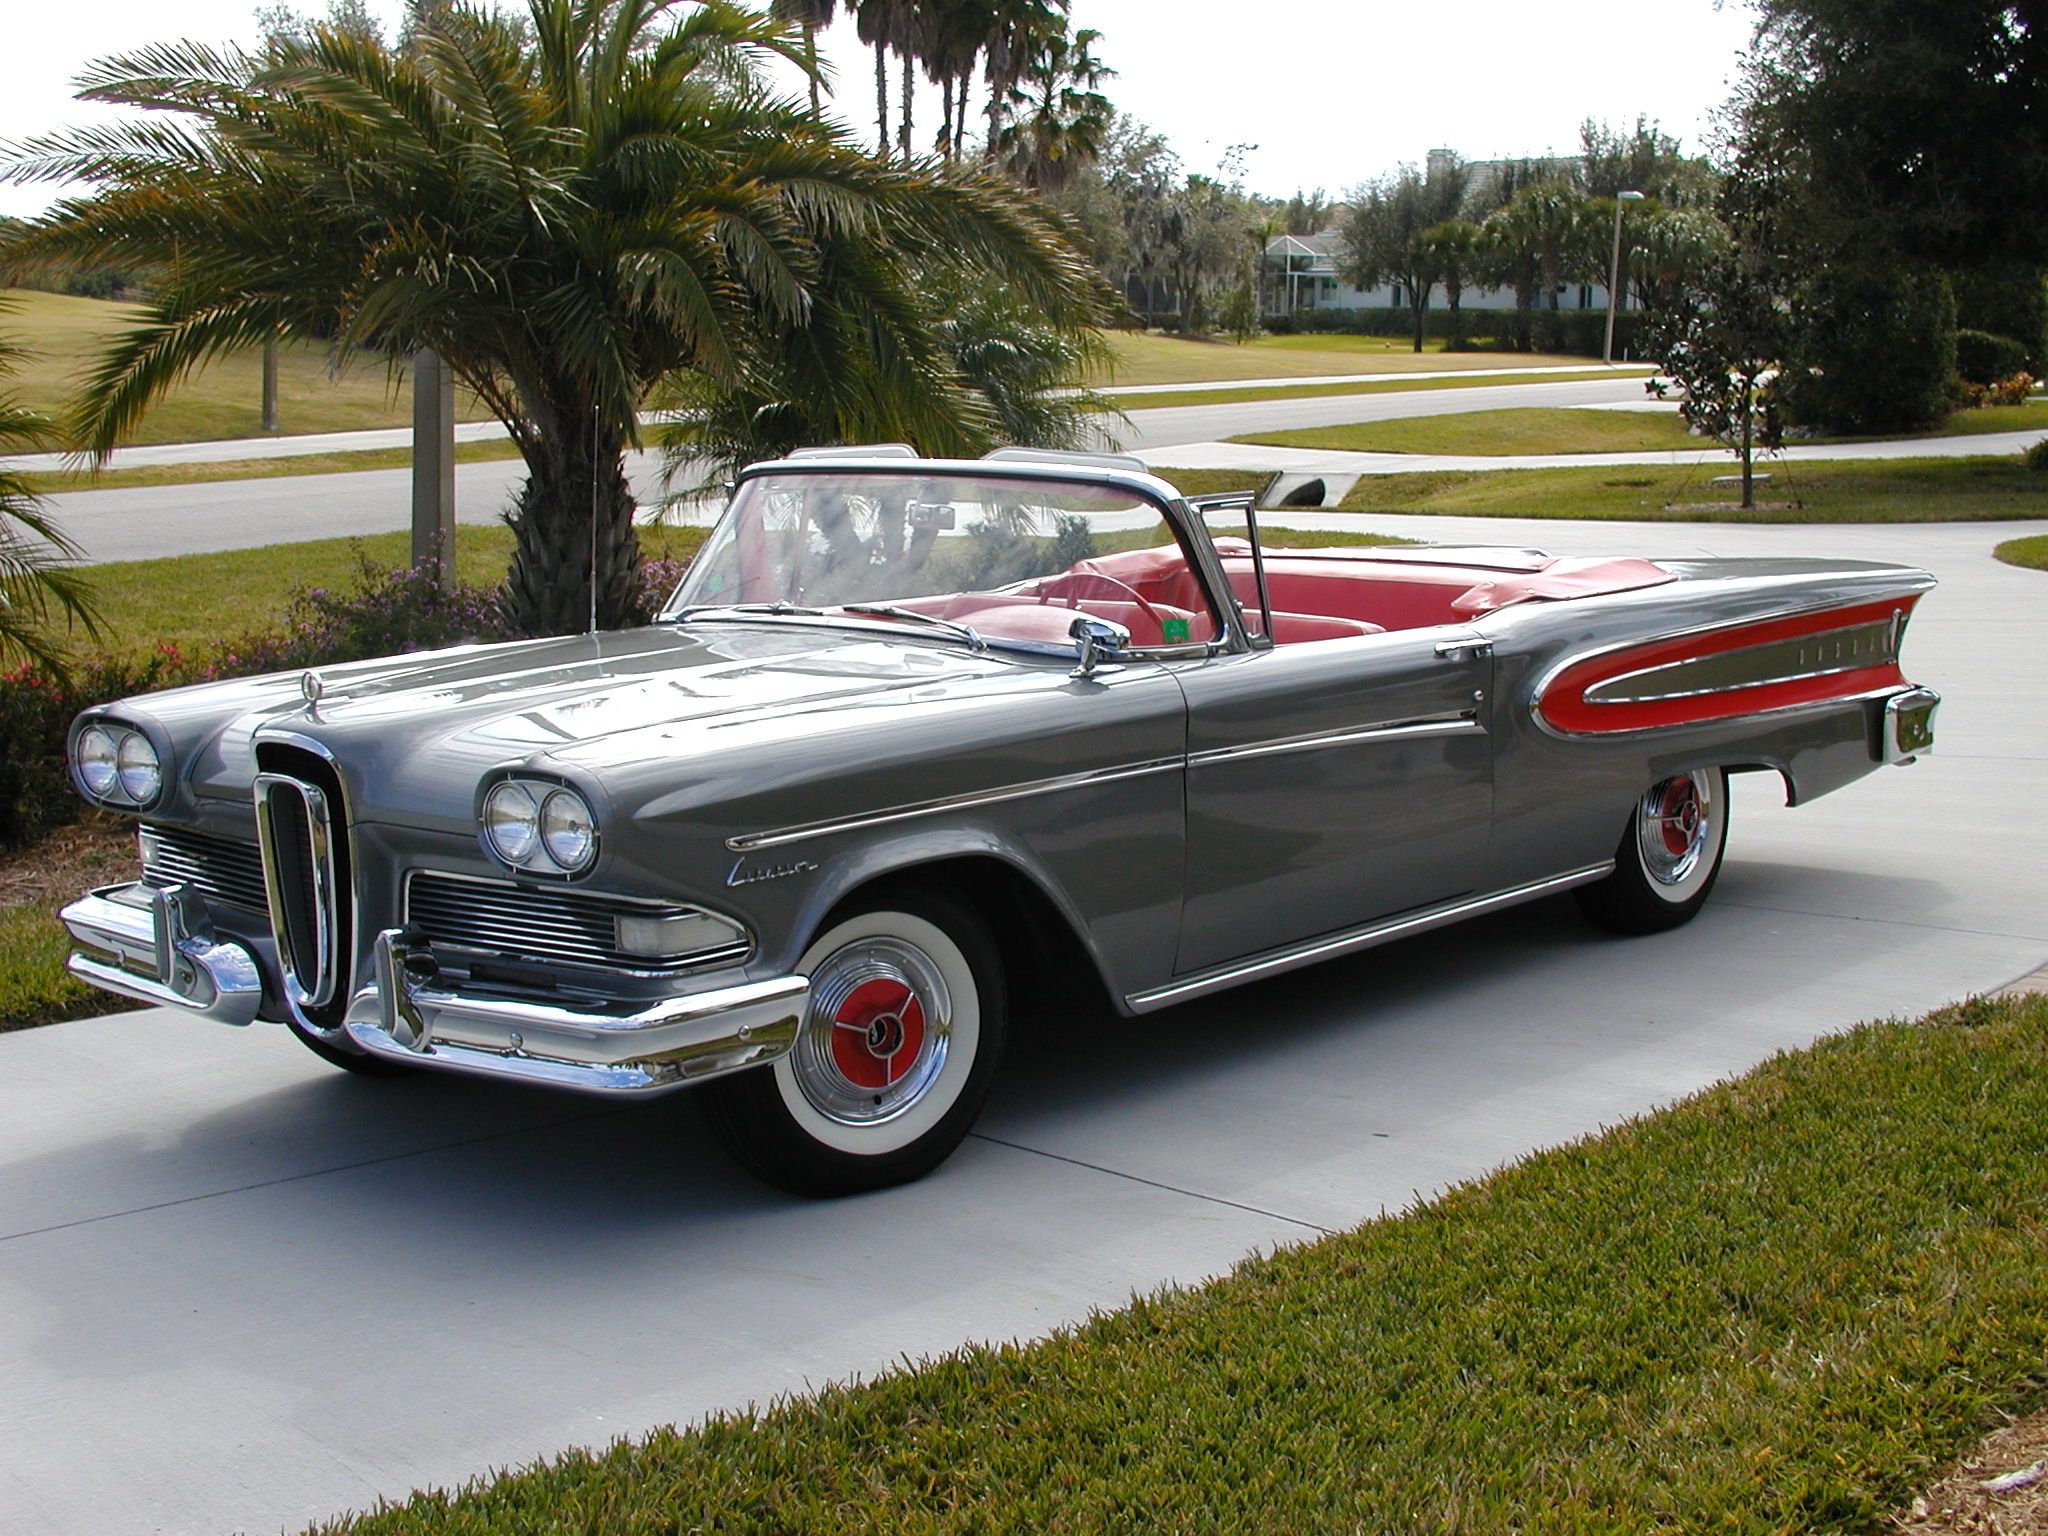 1958 EDSEL CITATION CONVERTIBLE Cars and Trucks from the